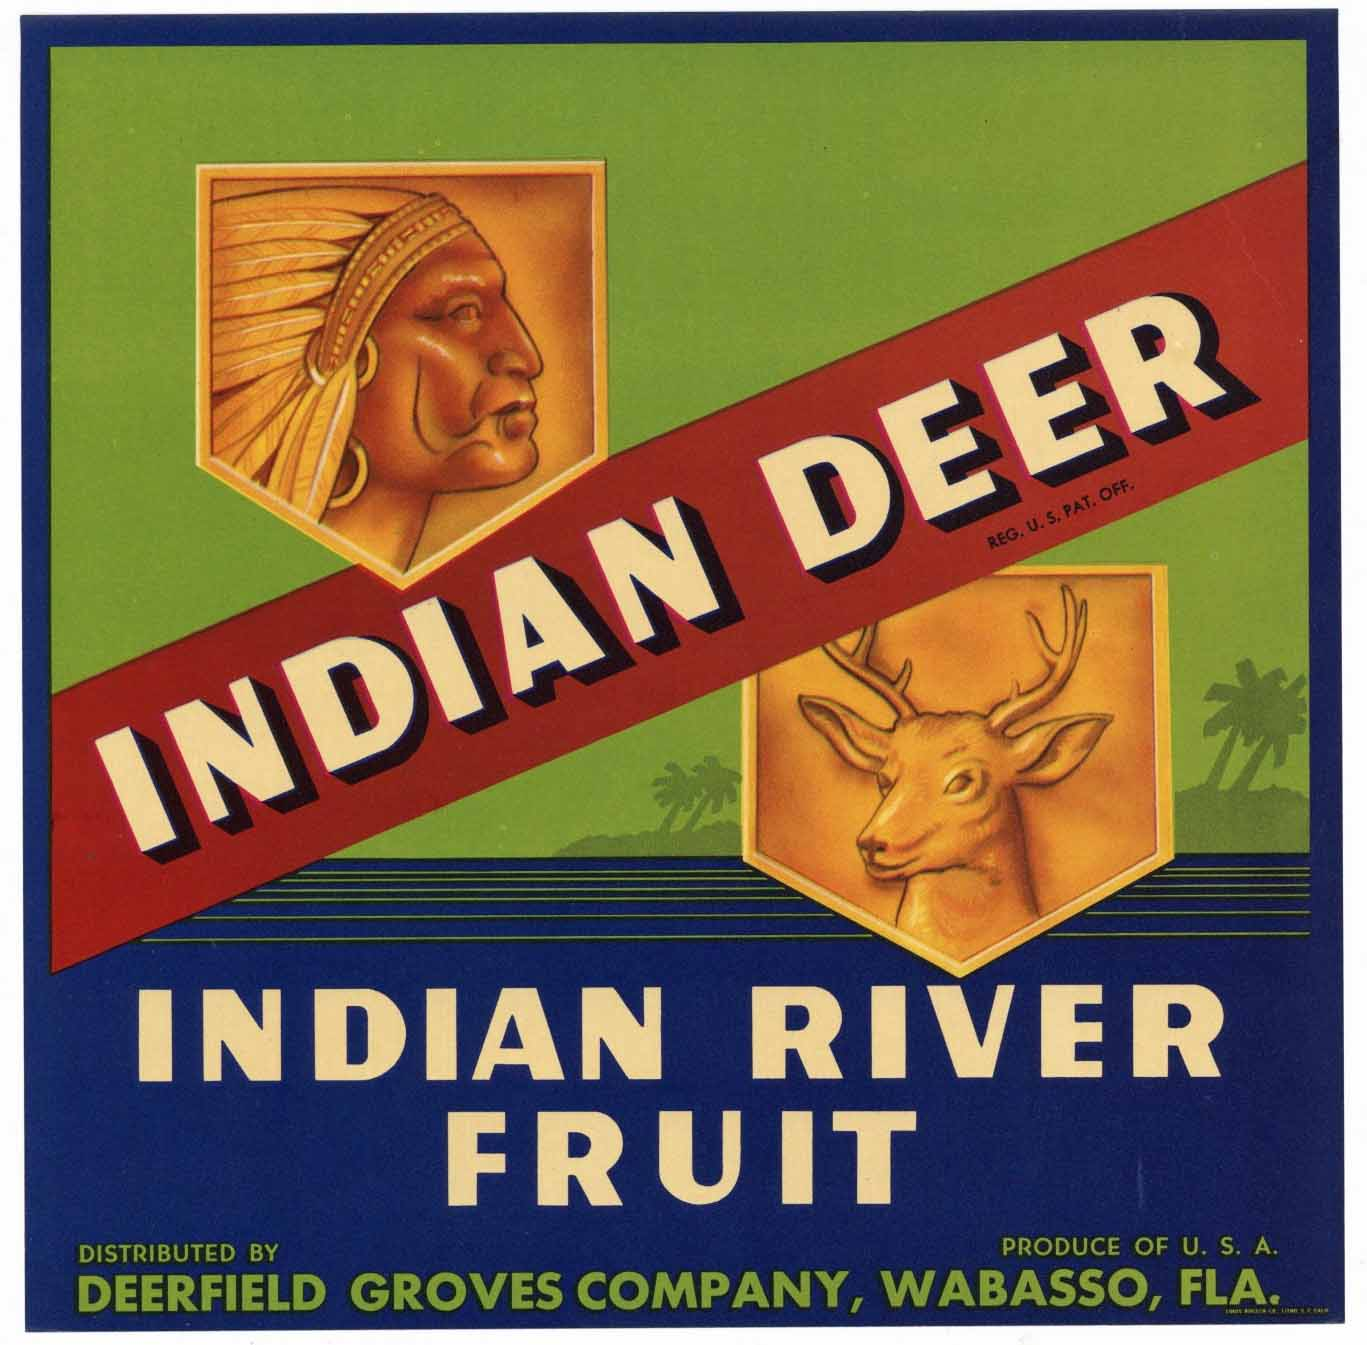 Indian Deer Brand Vintage Wabasso Florida Citrus Crate Label, n